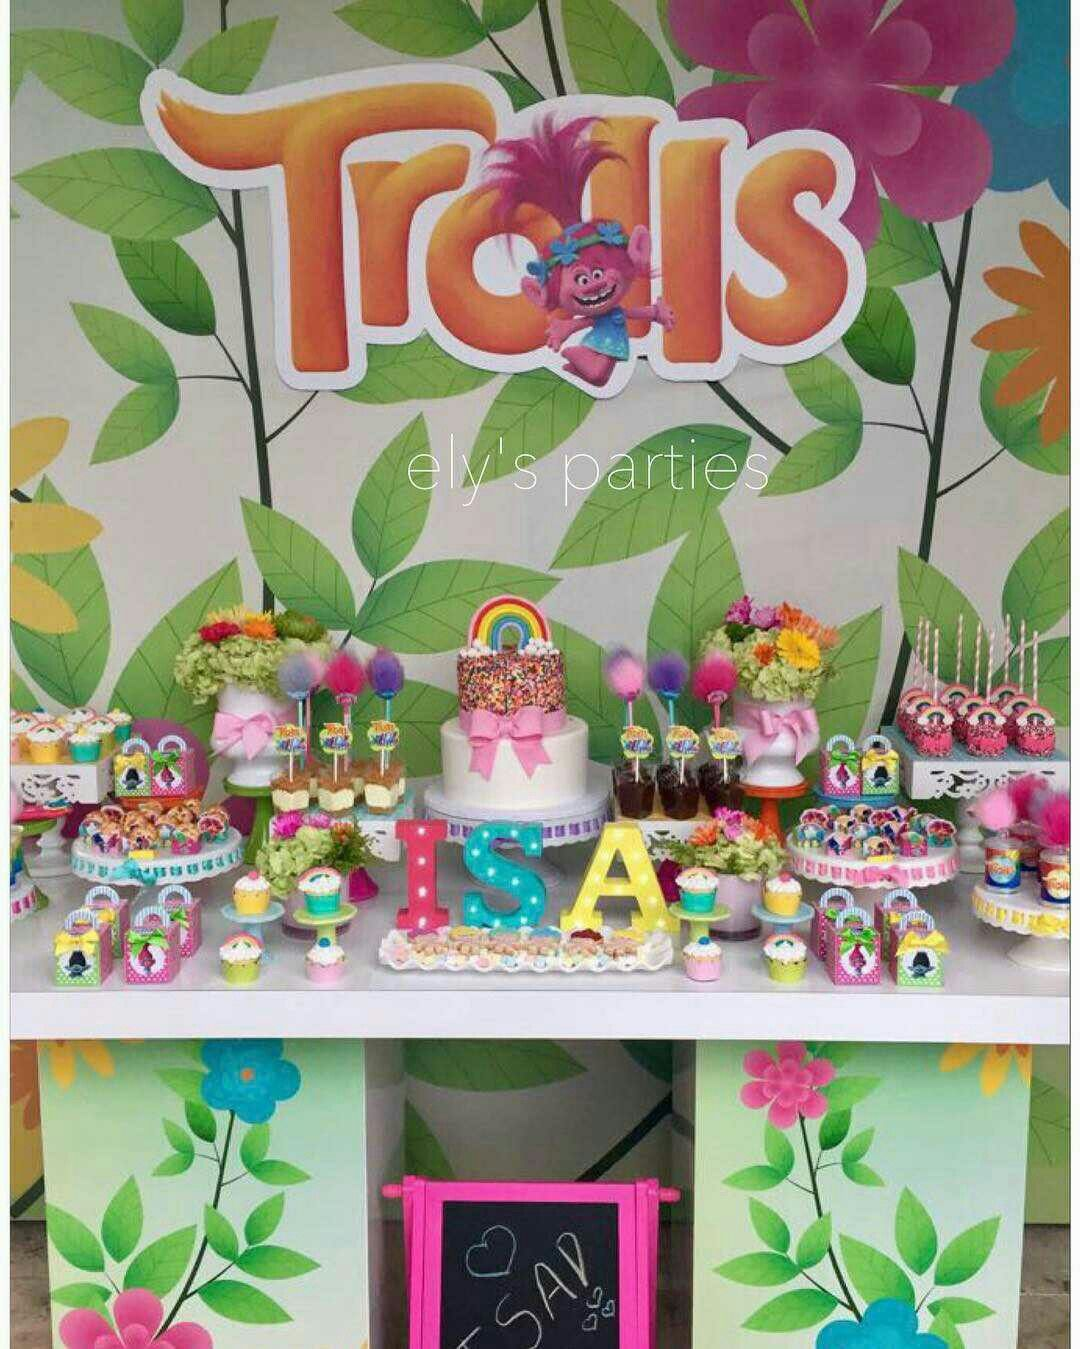 Trolls pastel rainbow birthday party ideas Trolls Rainbow Party